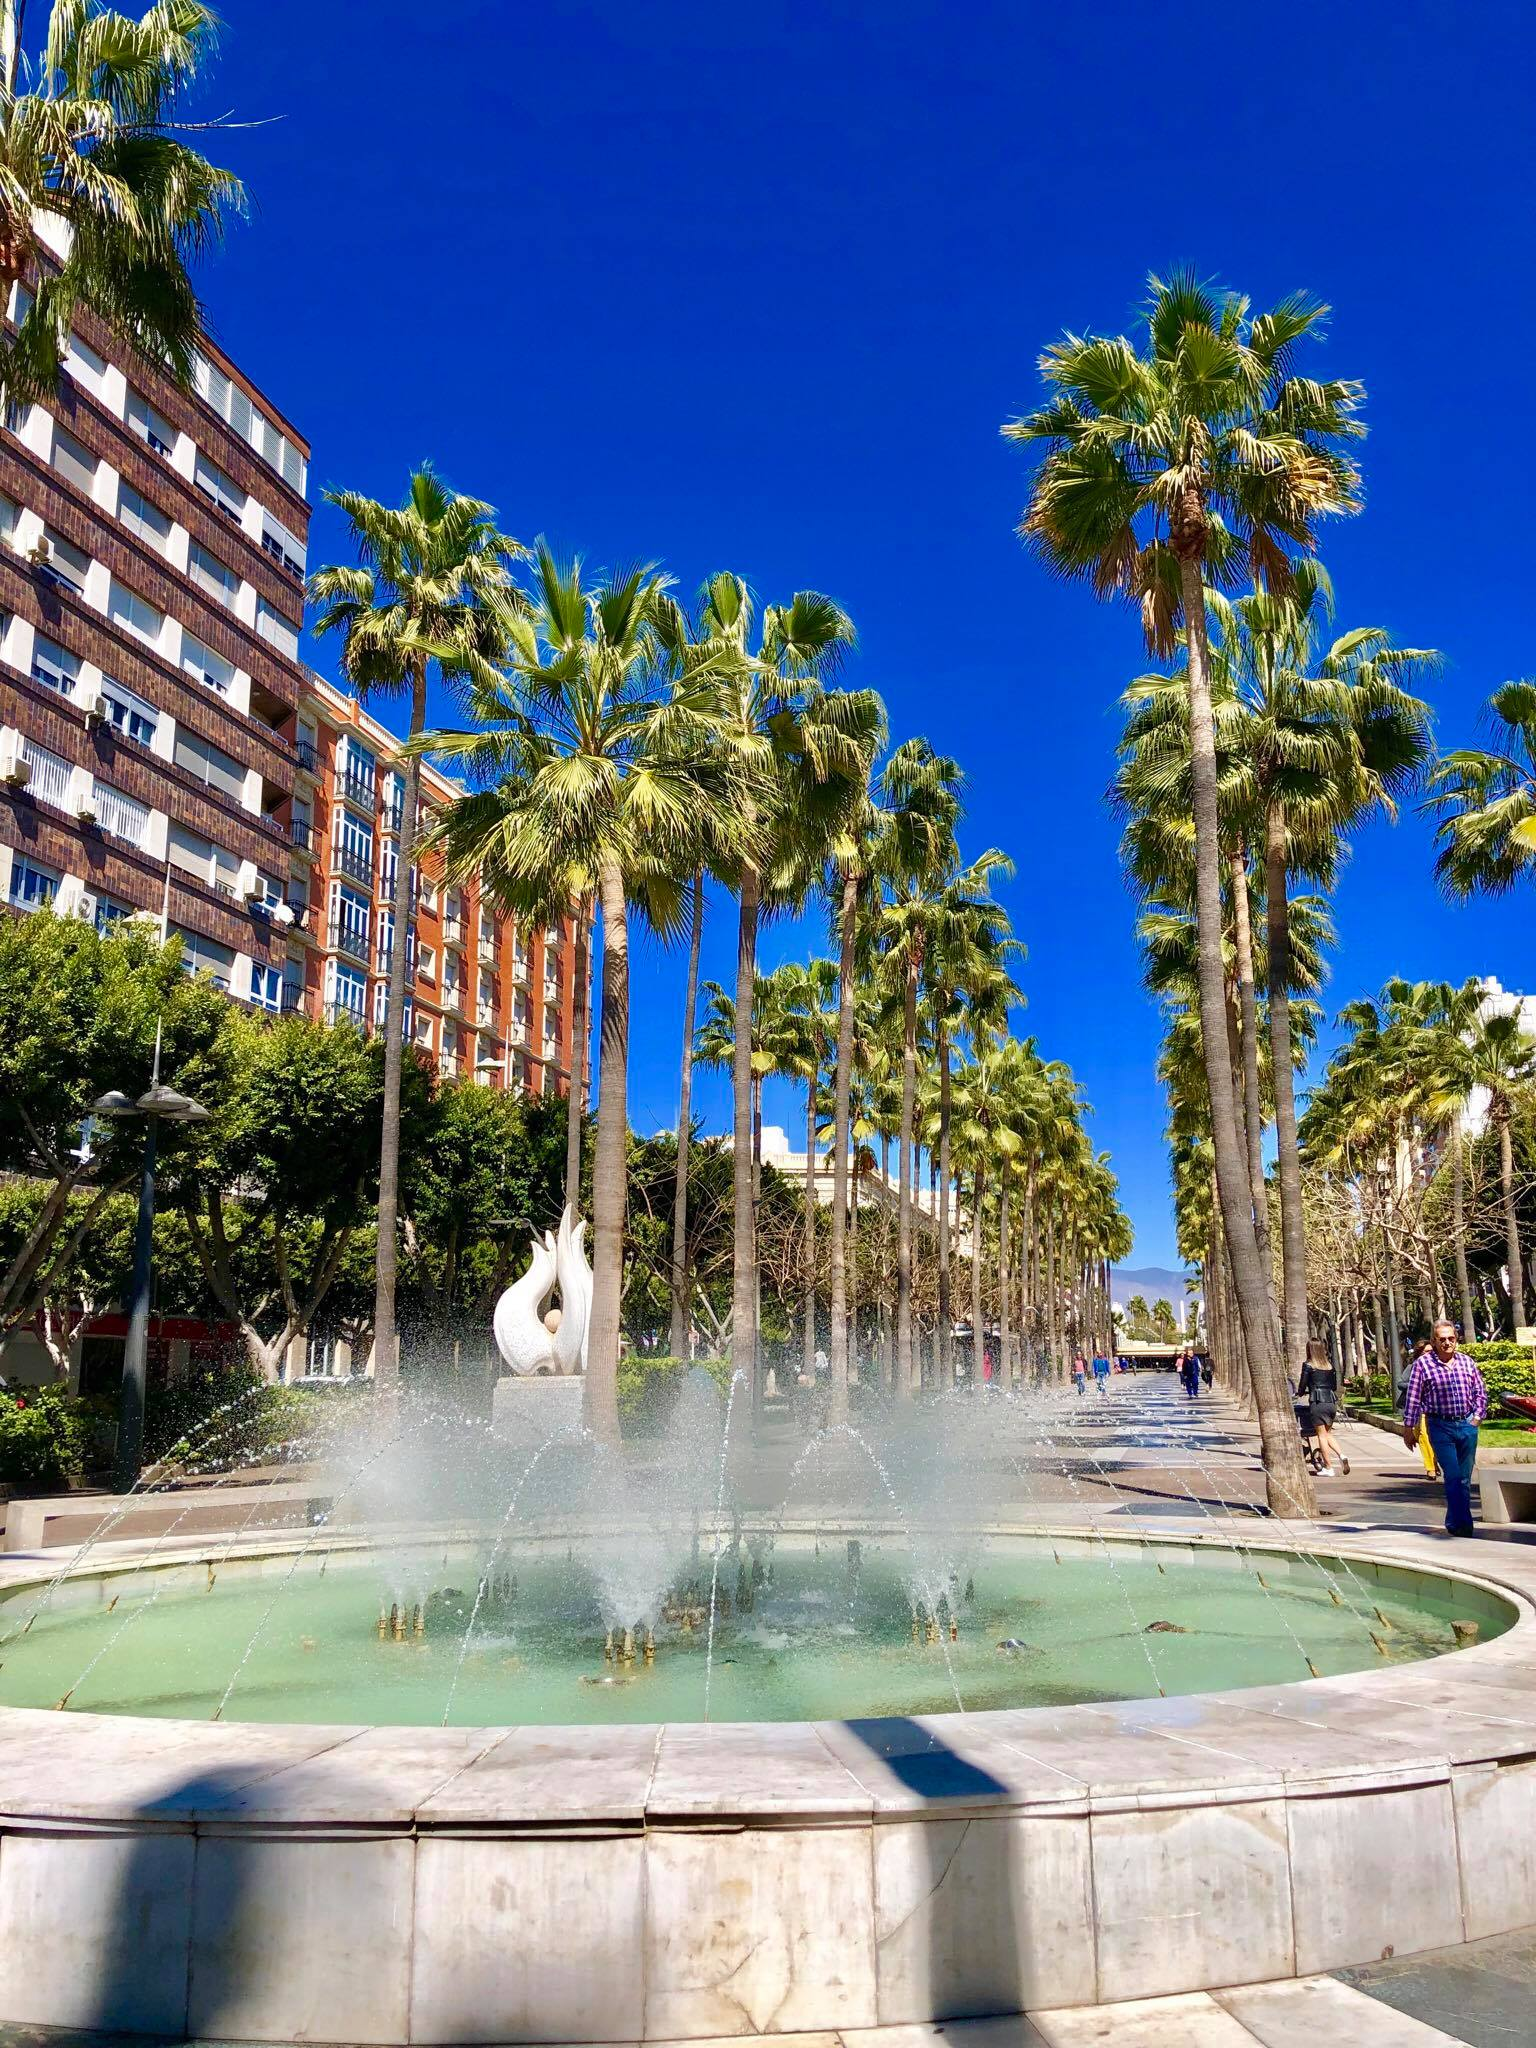 10 Reasons Why Almeria In South of Spain Is Worth A Visit8.jpg